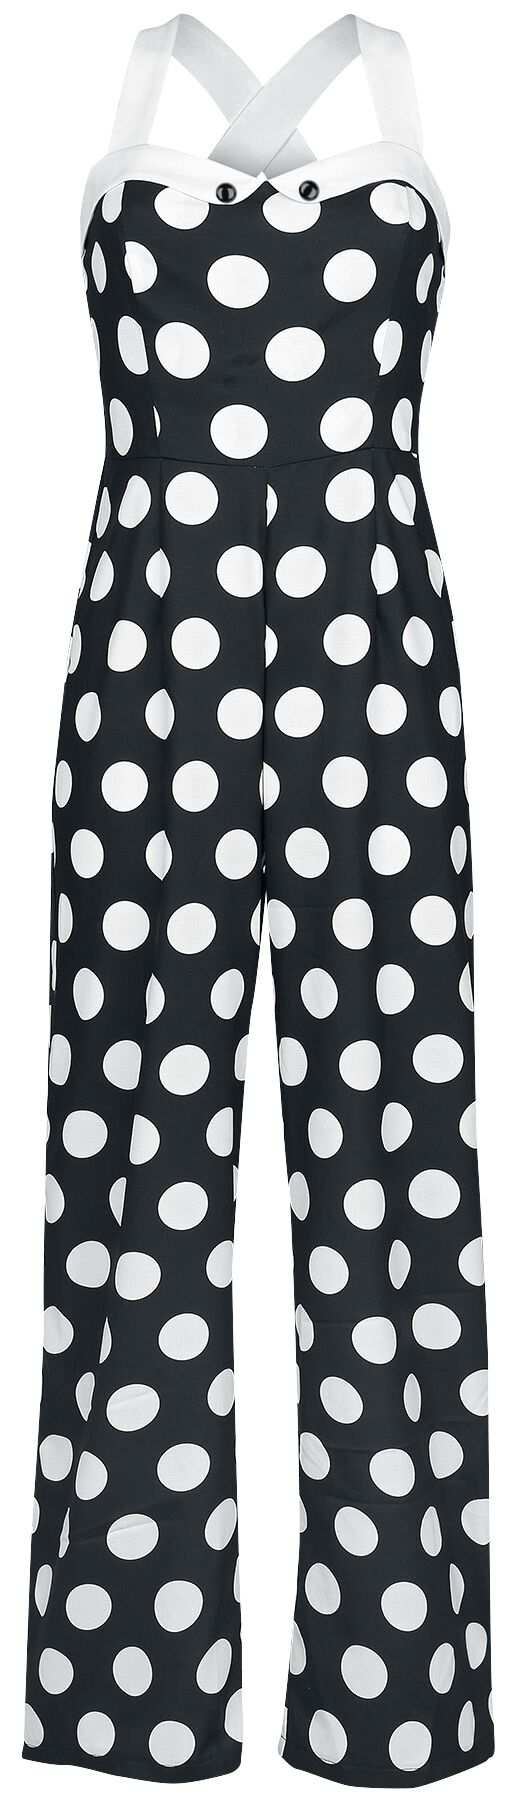 Image of   Banned Dotty About You Jumpsuit sort